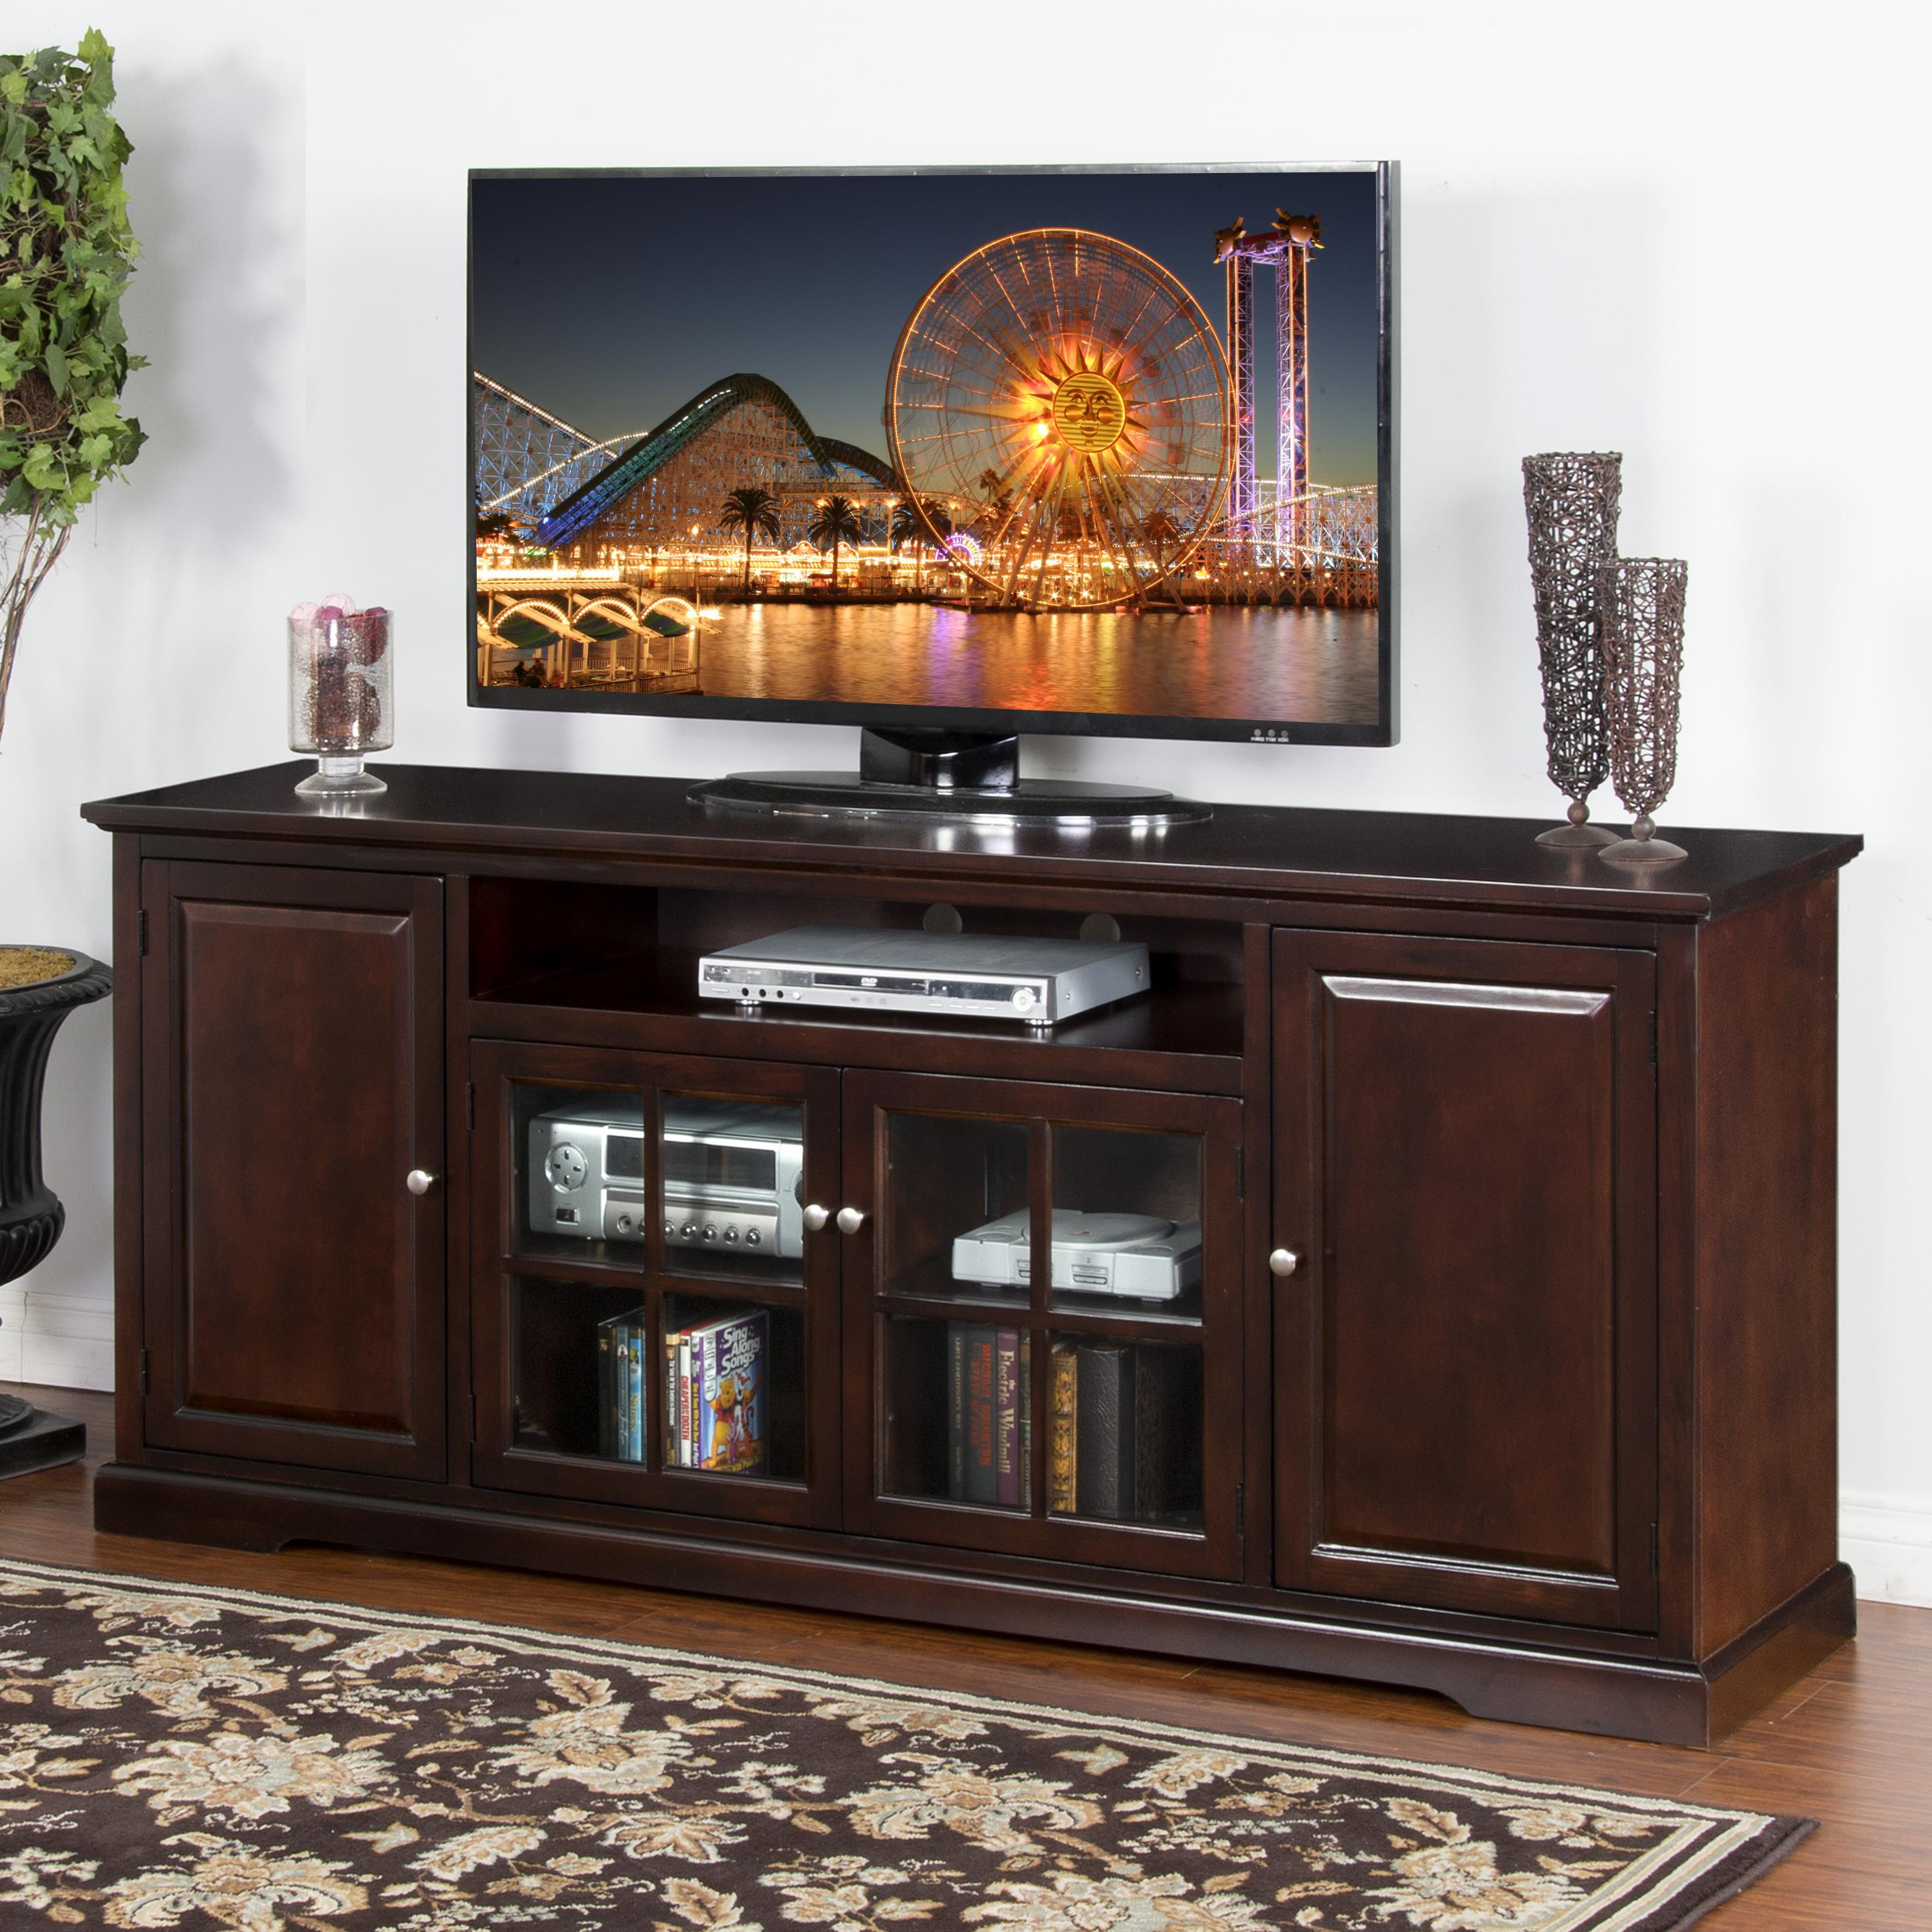 "Sunny Designs Monterey 78"" TV Console - Item Number: 3474MT-78"